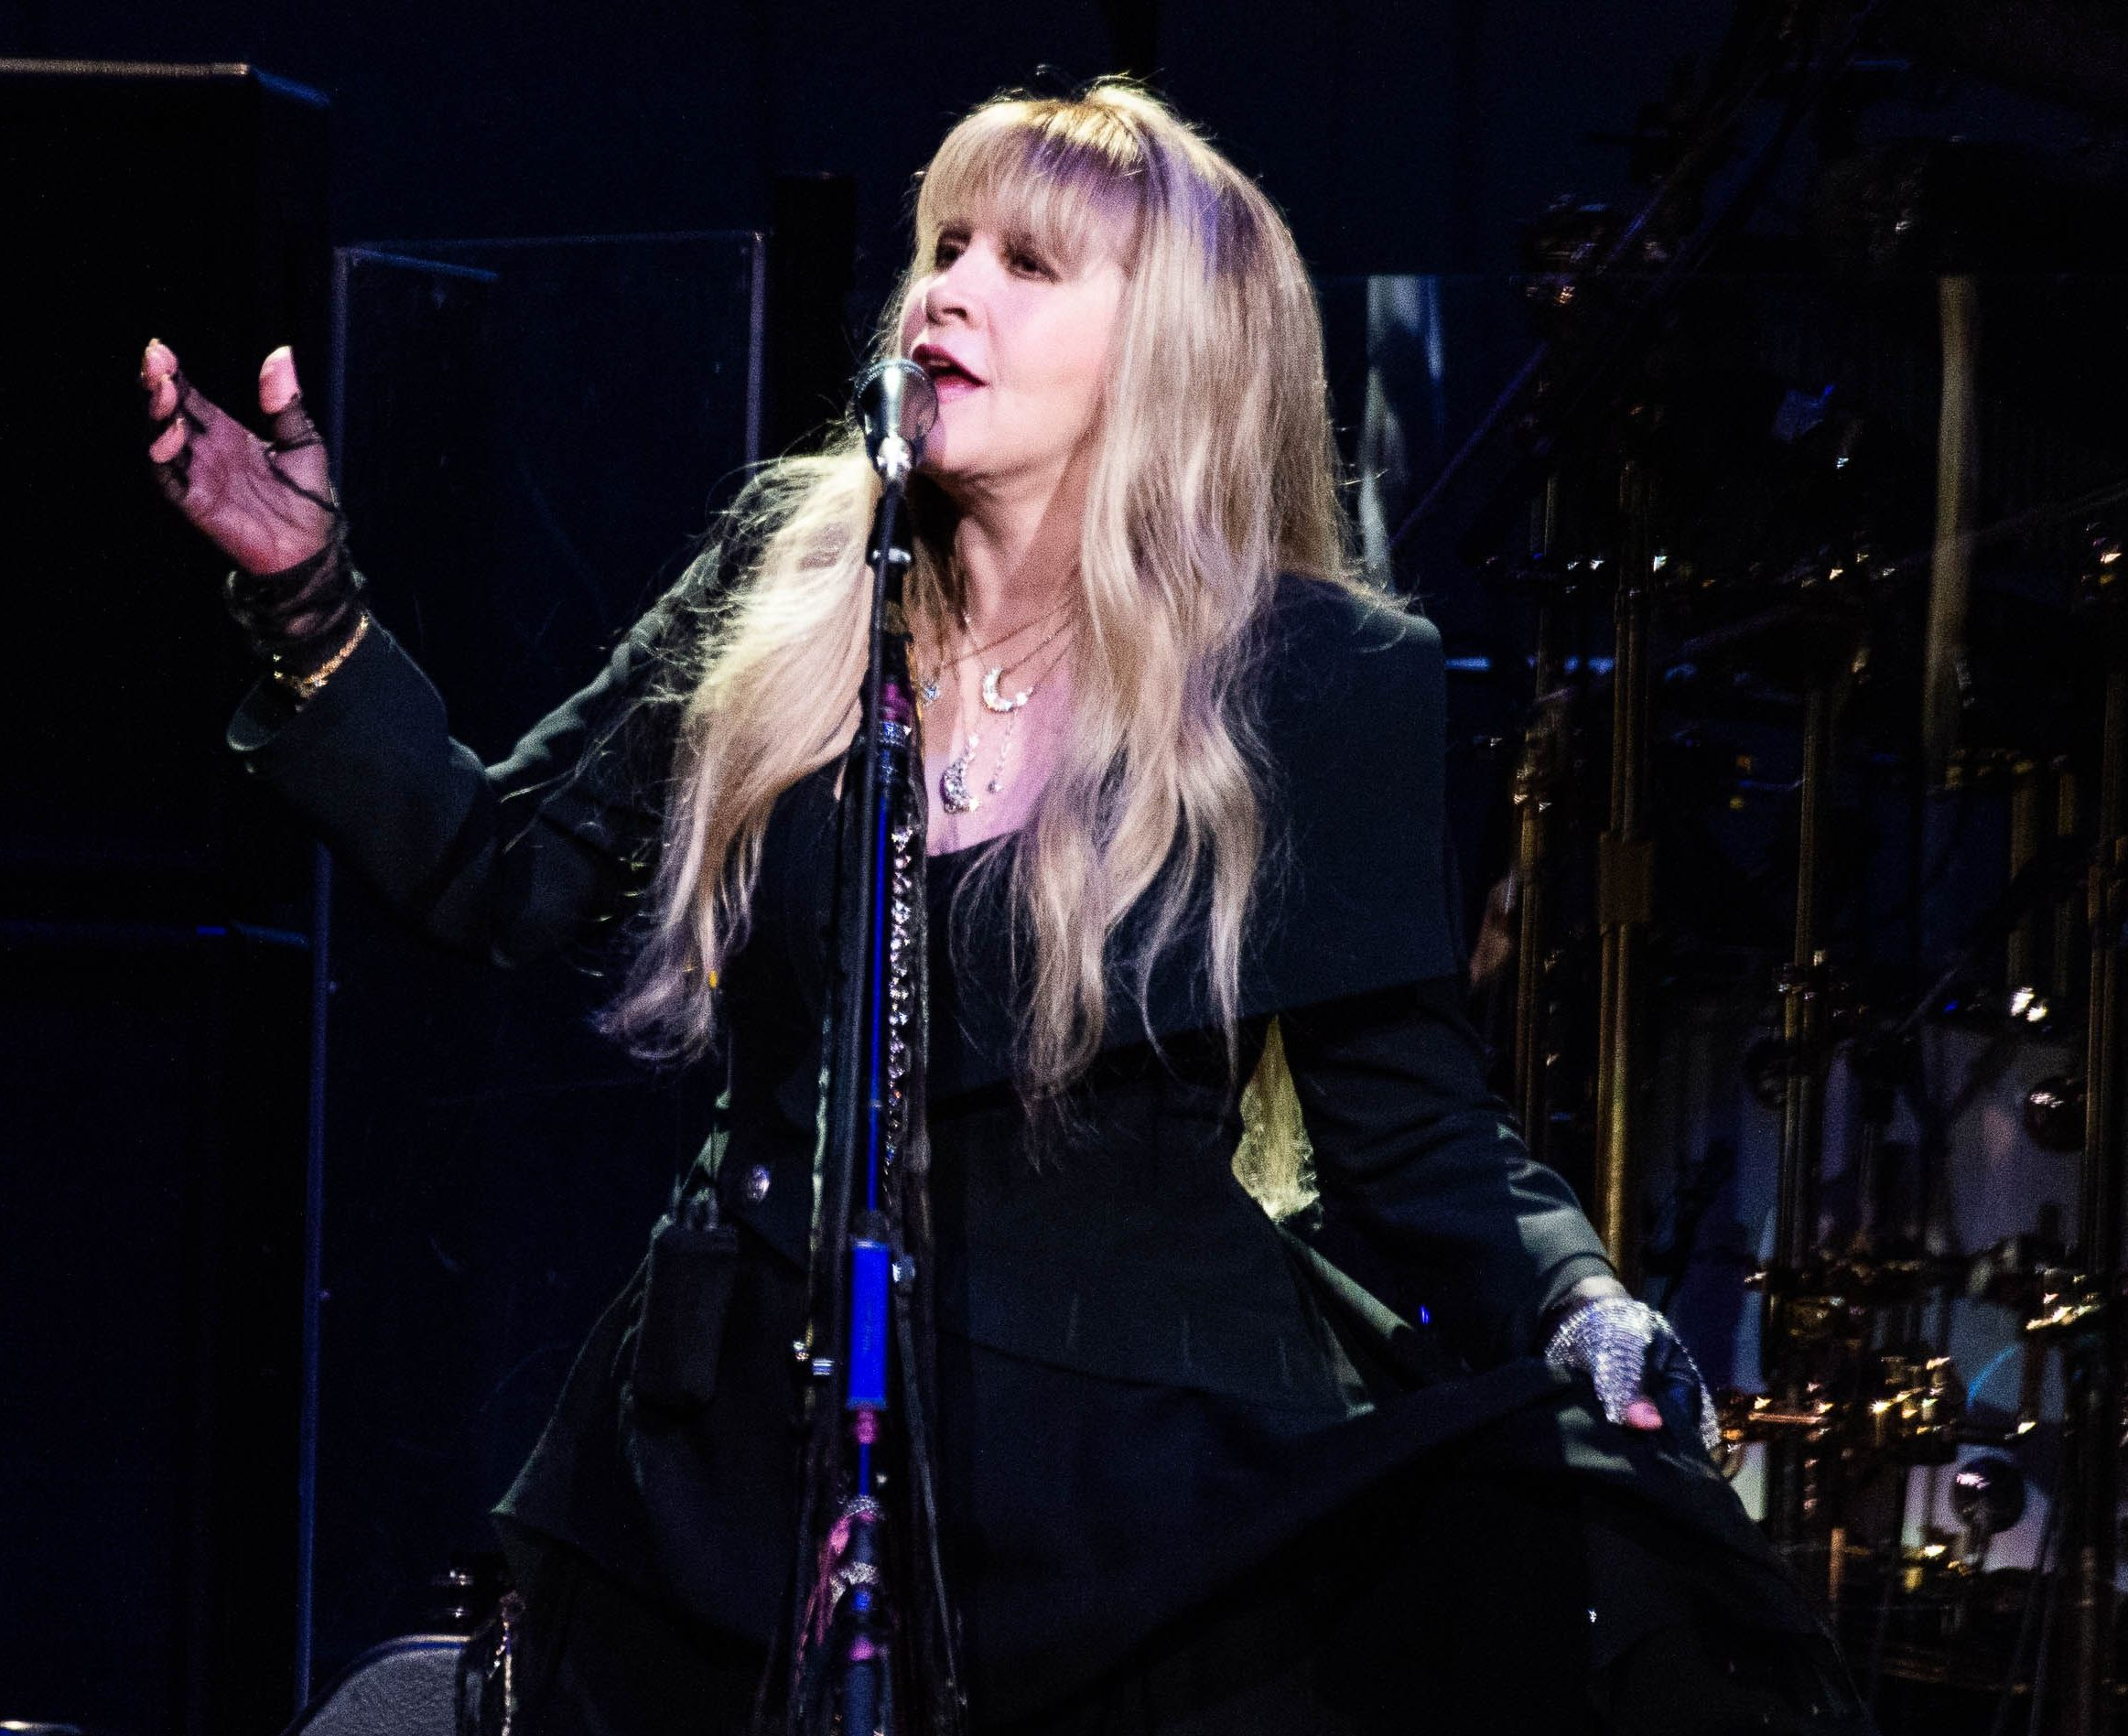 Stevie Nicks said she was 'affected and touched' by the film Twilight